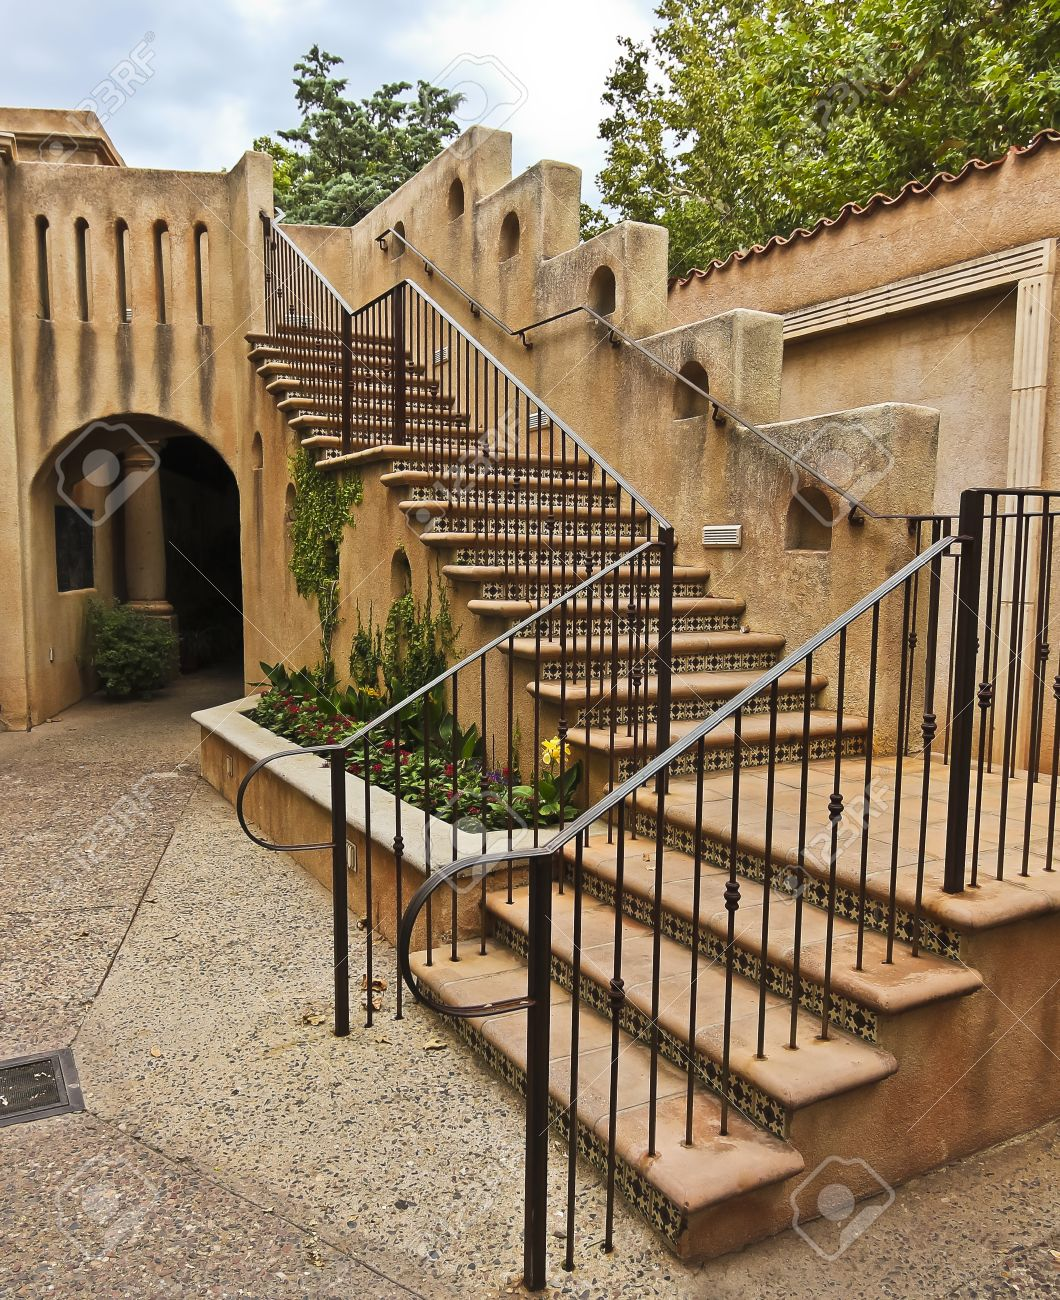 Fullsize Of Spanish Colonial Architecture